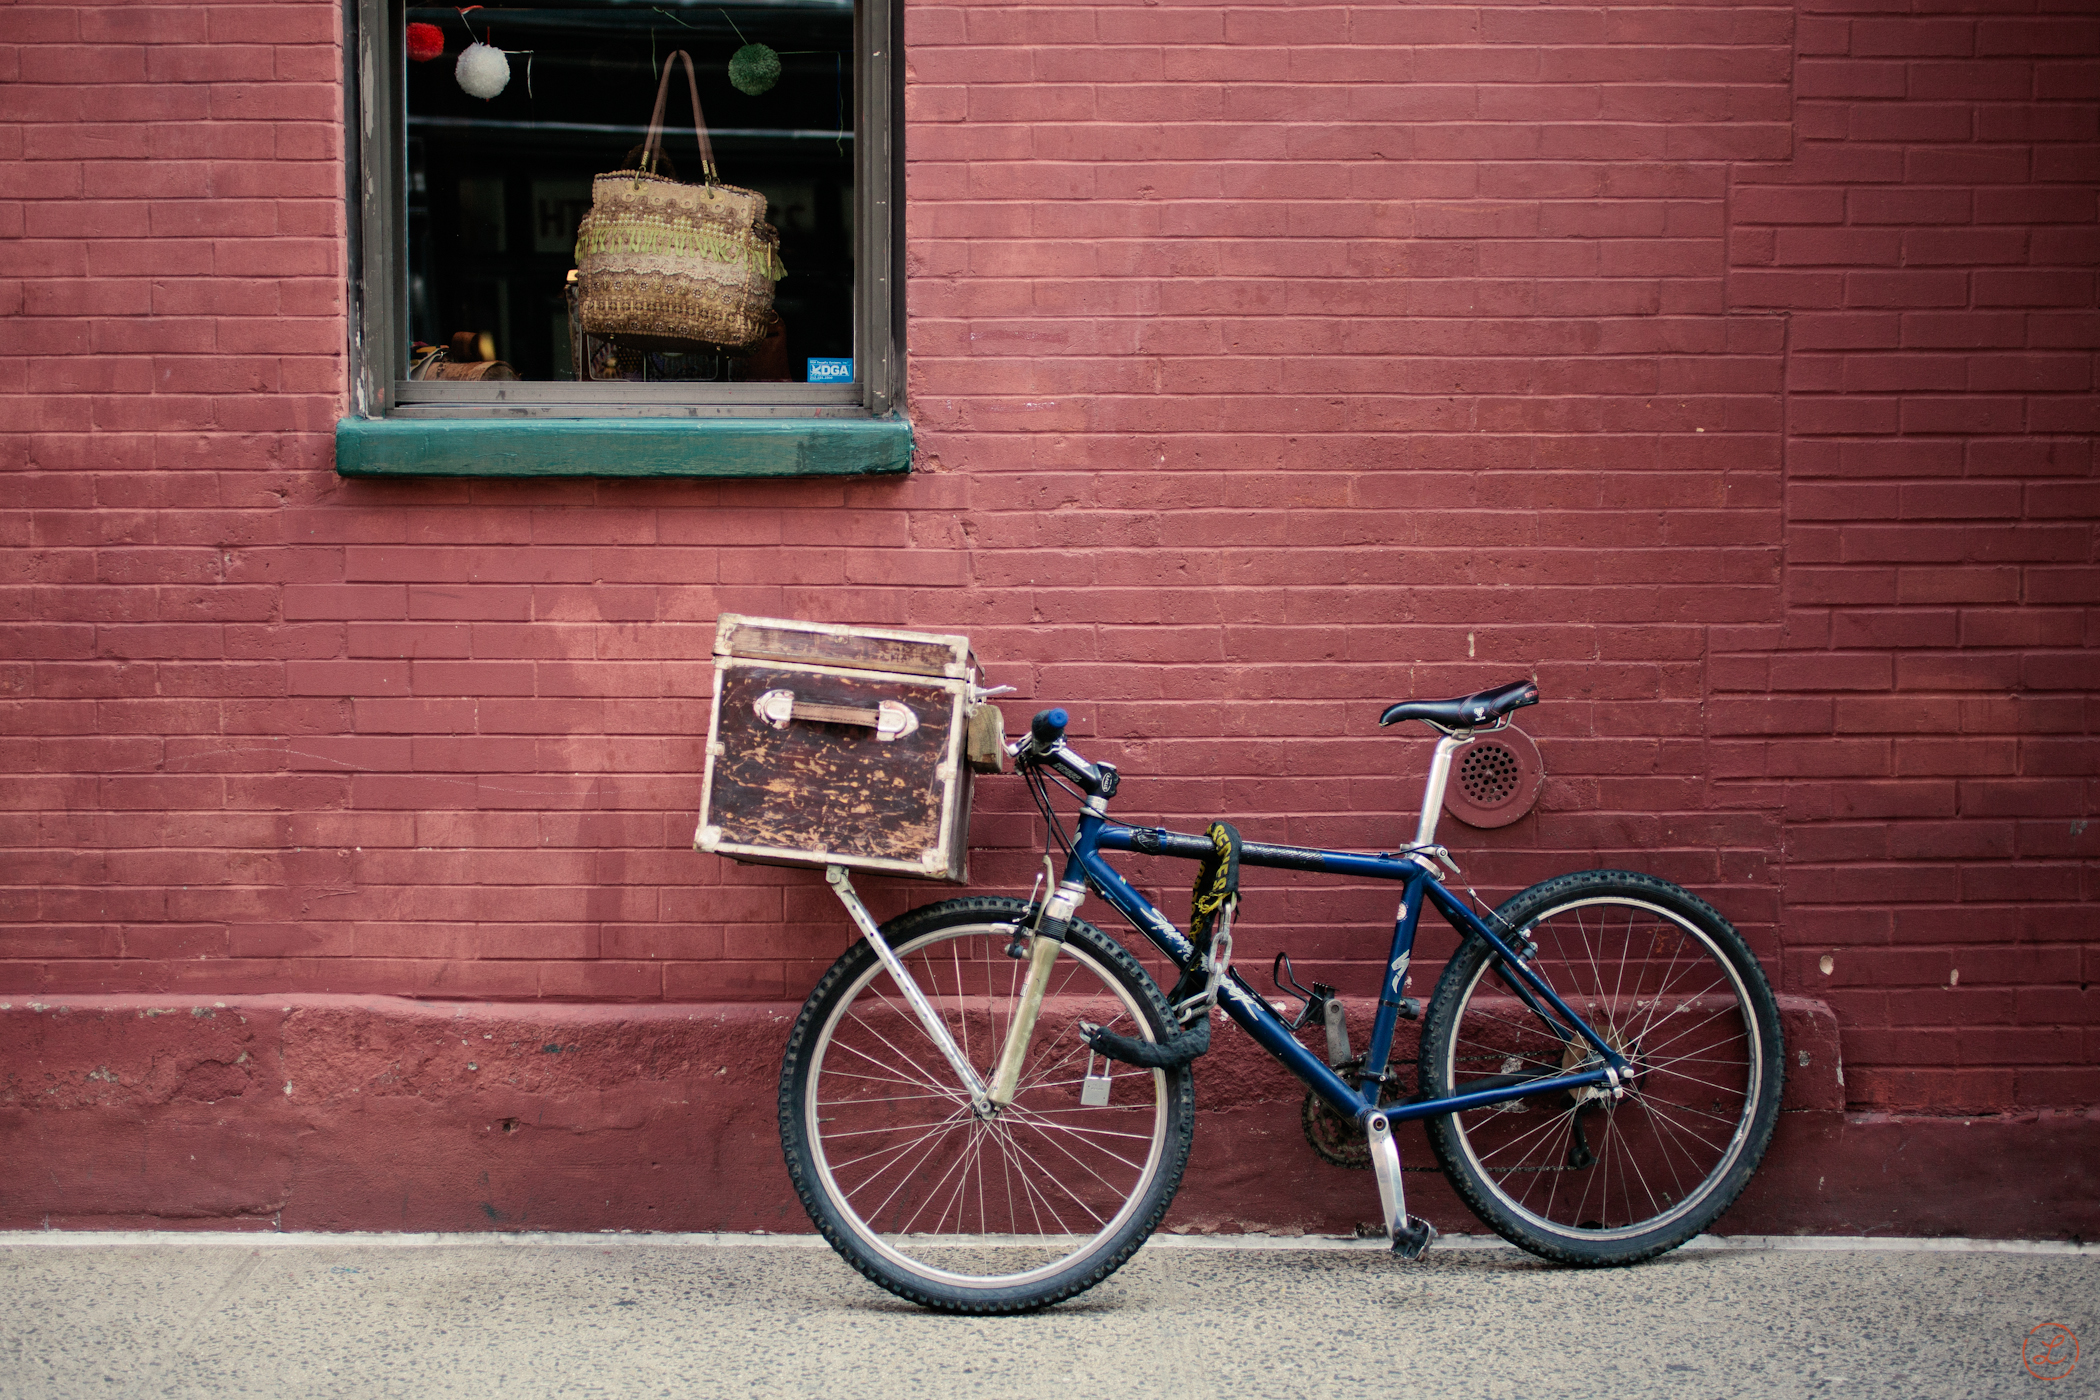 Bicycle in Nolita, New York City.